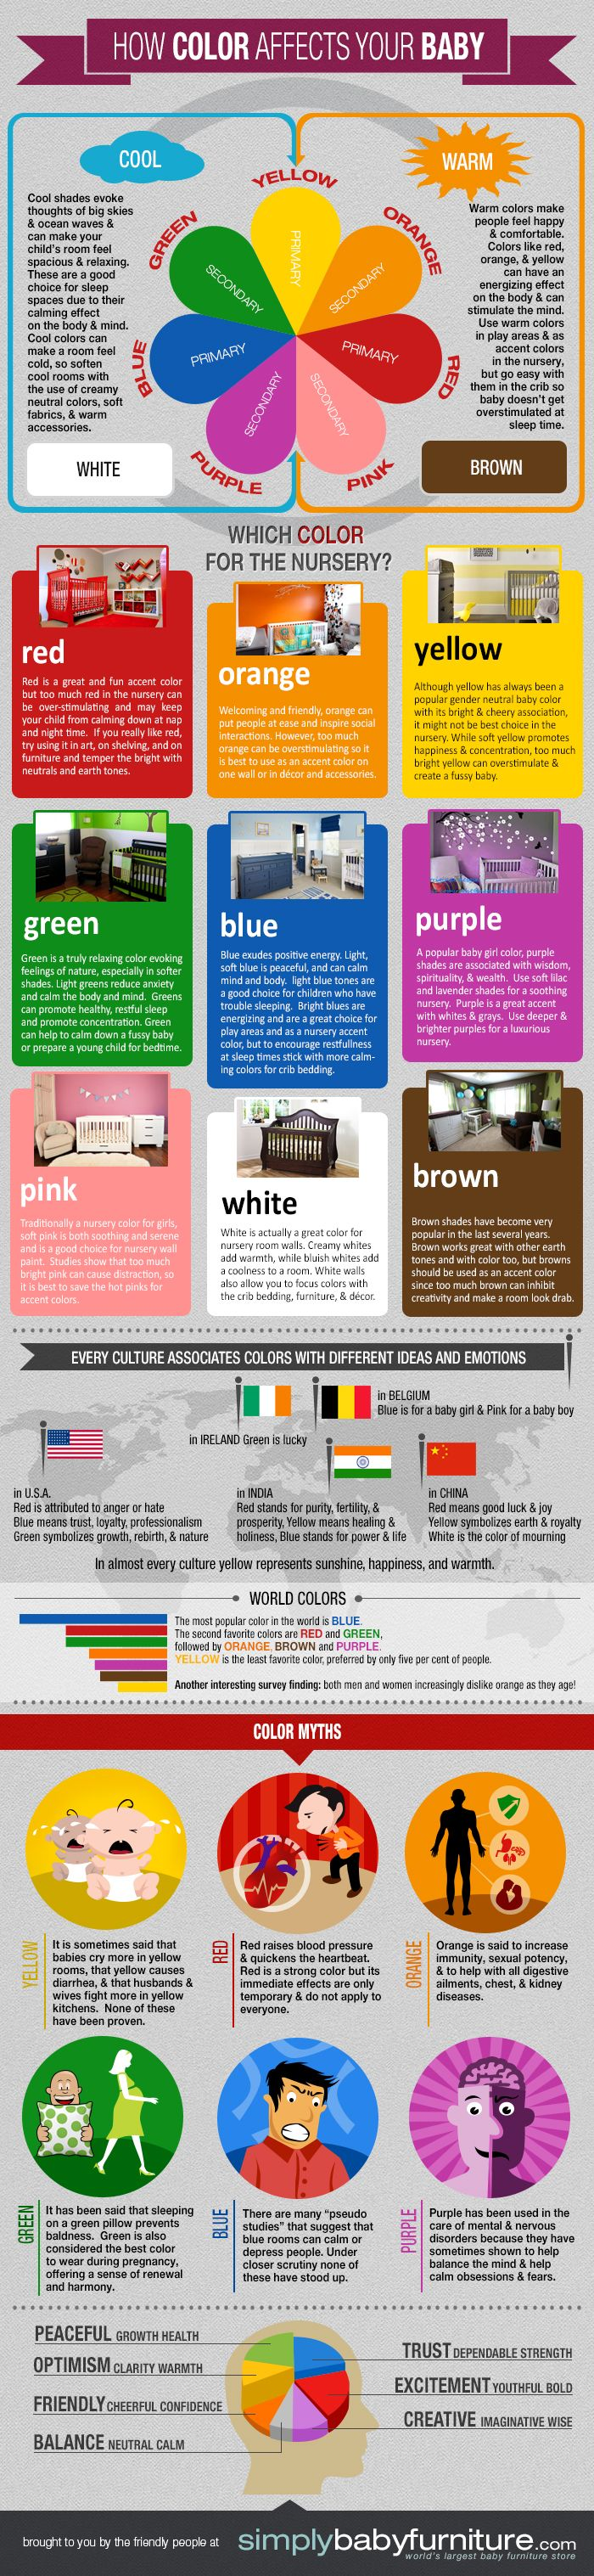 Nursery Color Guide: How Color Affects Your Baby's Mood - created this with a bunch of great info to help in choosing nursery colors or paint colors used around your baby (or you for that matter).  All the info are from 'psychology of color' type information.